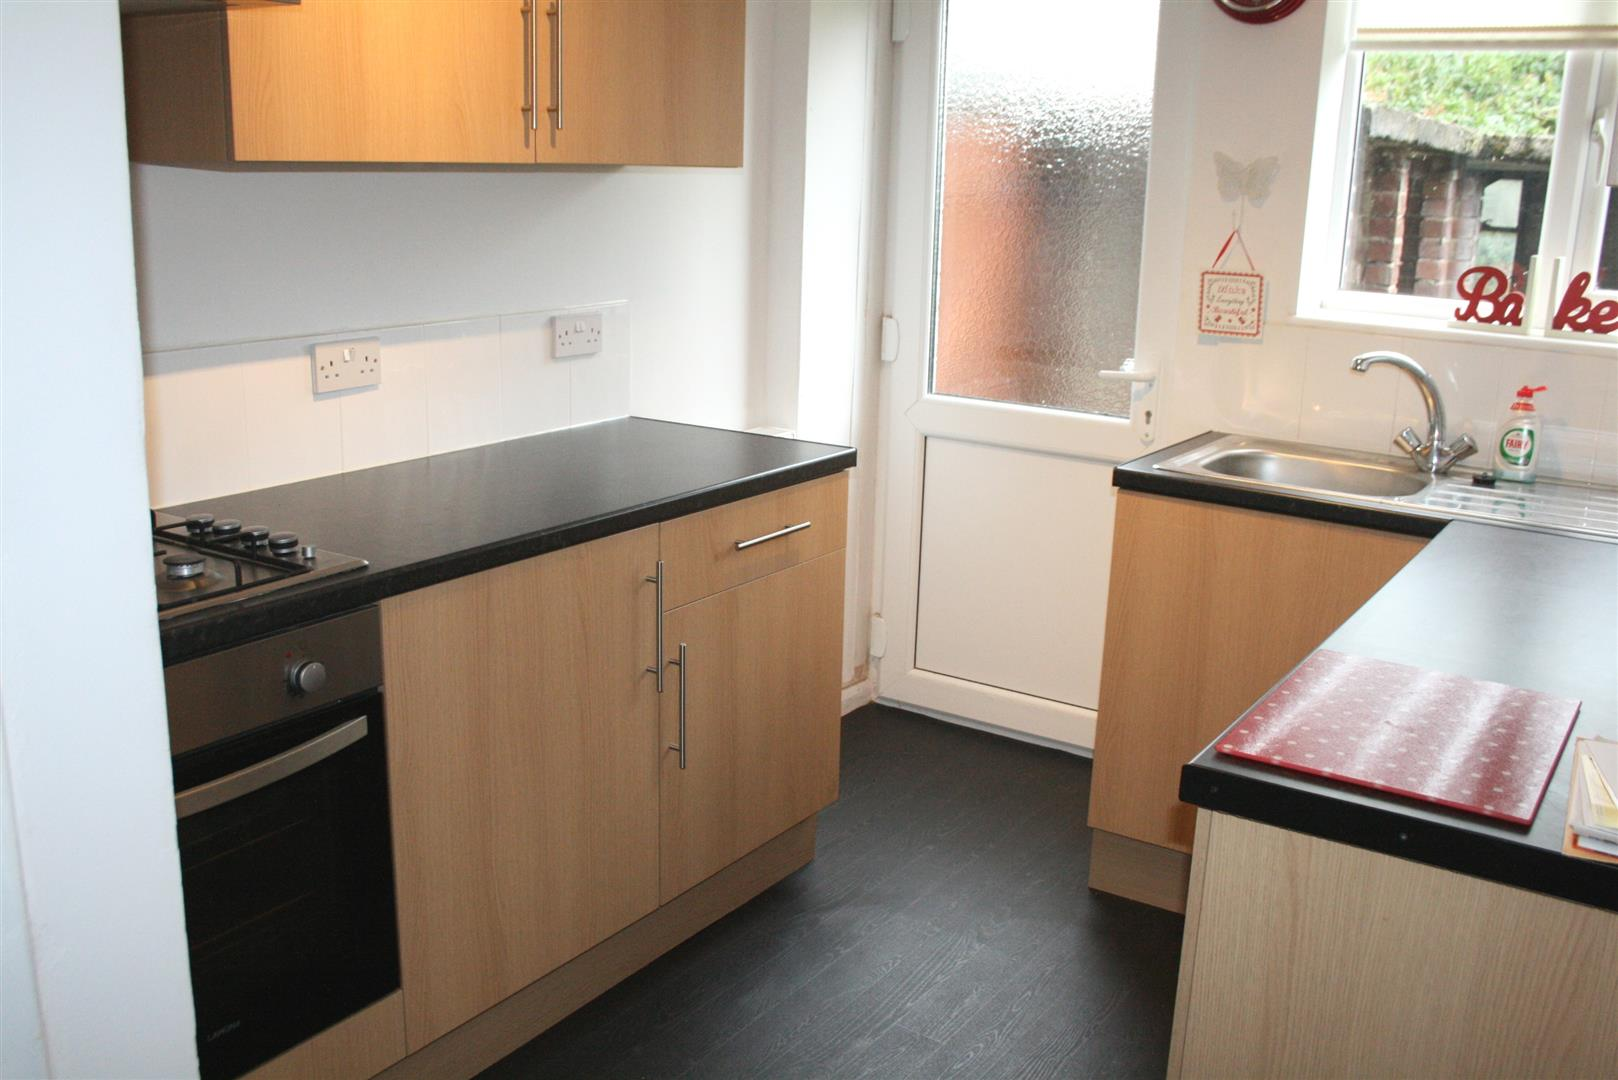 3 Bedrooms, House - Mid Terrace, Dooley Drive, Old Roan, Liverpool